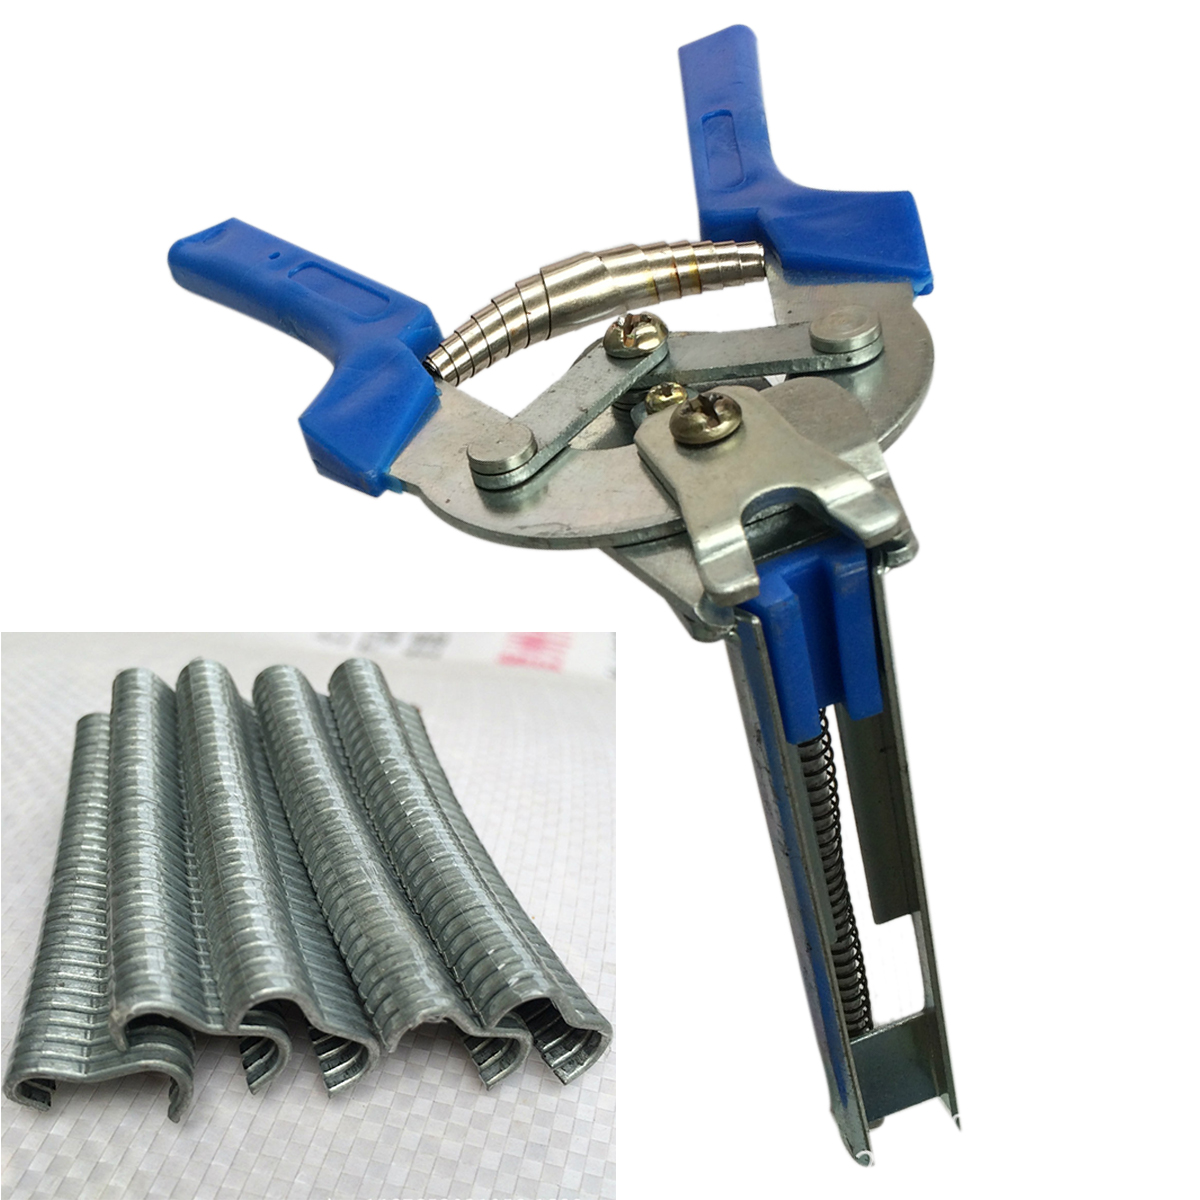 DWZ 600pcs M Clips Staples Chicken Mesh Cage Wire Fencing & Hog Ring Plier Tool